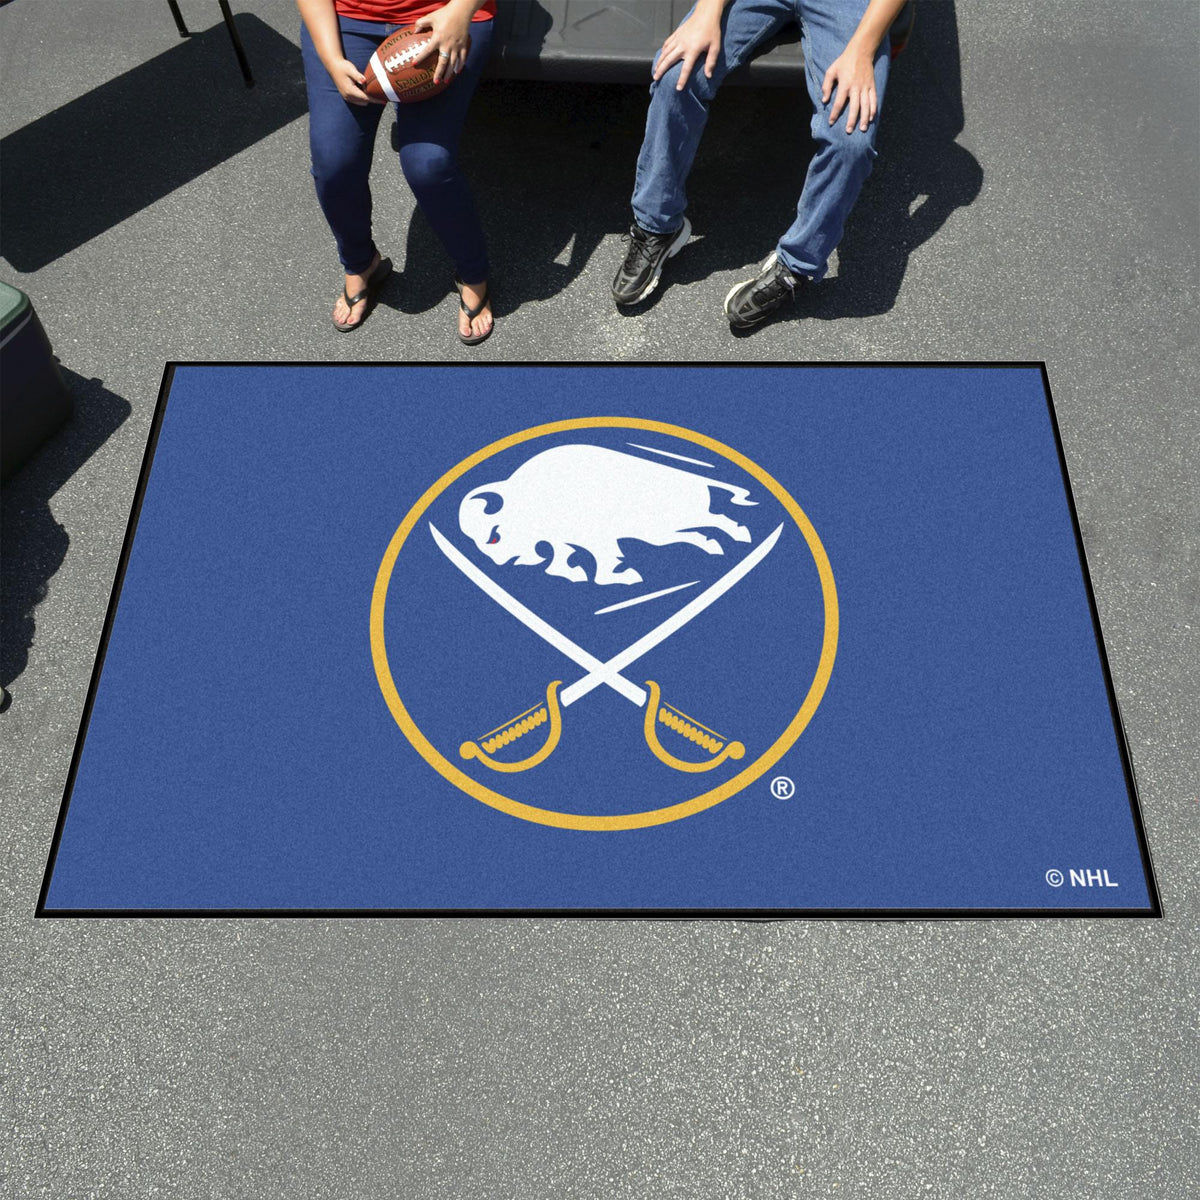 NHL - Ulti-Mat NHL Mats, Rectangular Mats, Ulti-Mat, NHL, Home Fan Mats Buffalo Sabres